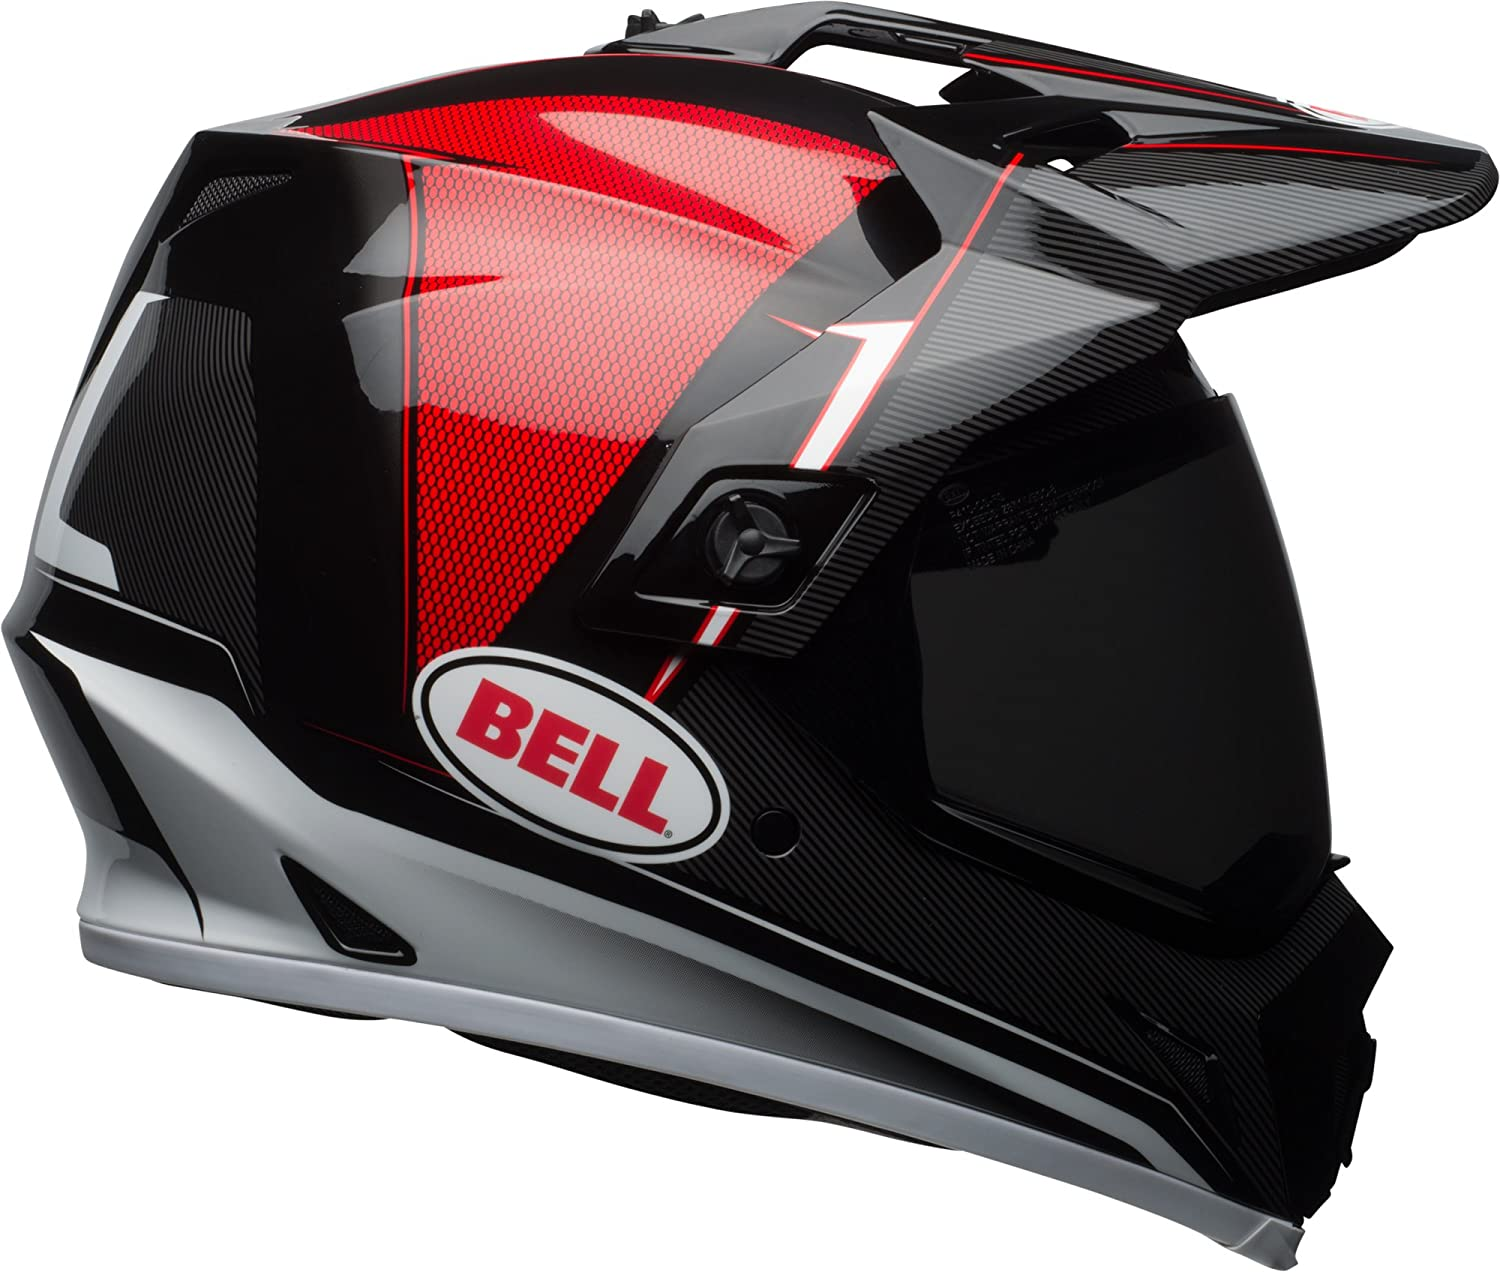 Amazon.com: Bell MX-9 Adventure MIPS Off-Road Motorcycle Helmet (Gloss Black/Red/White Berm, X-Large): Automotive